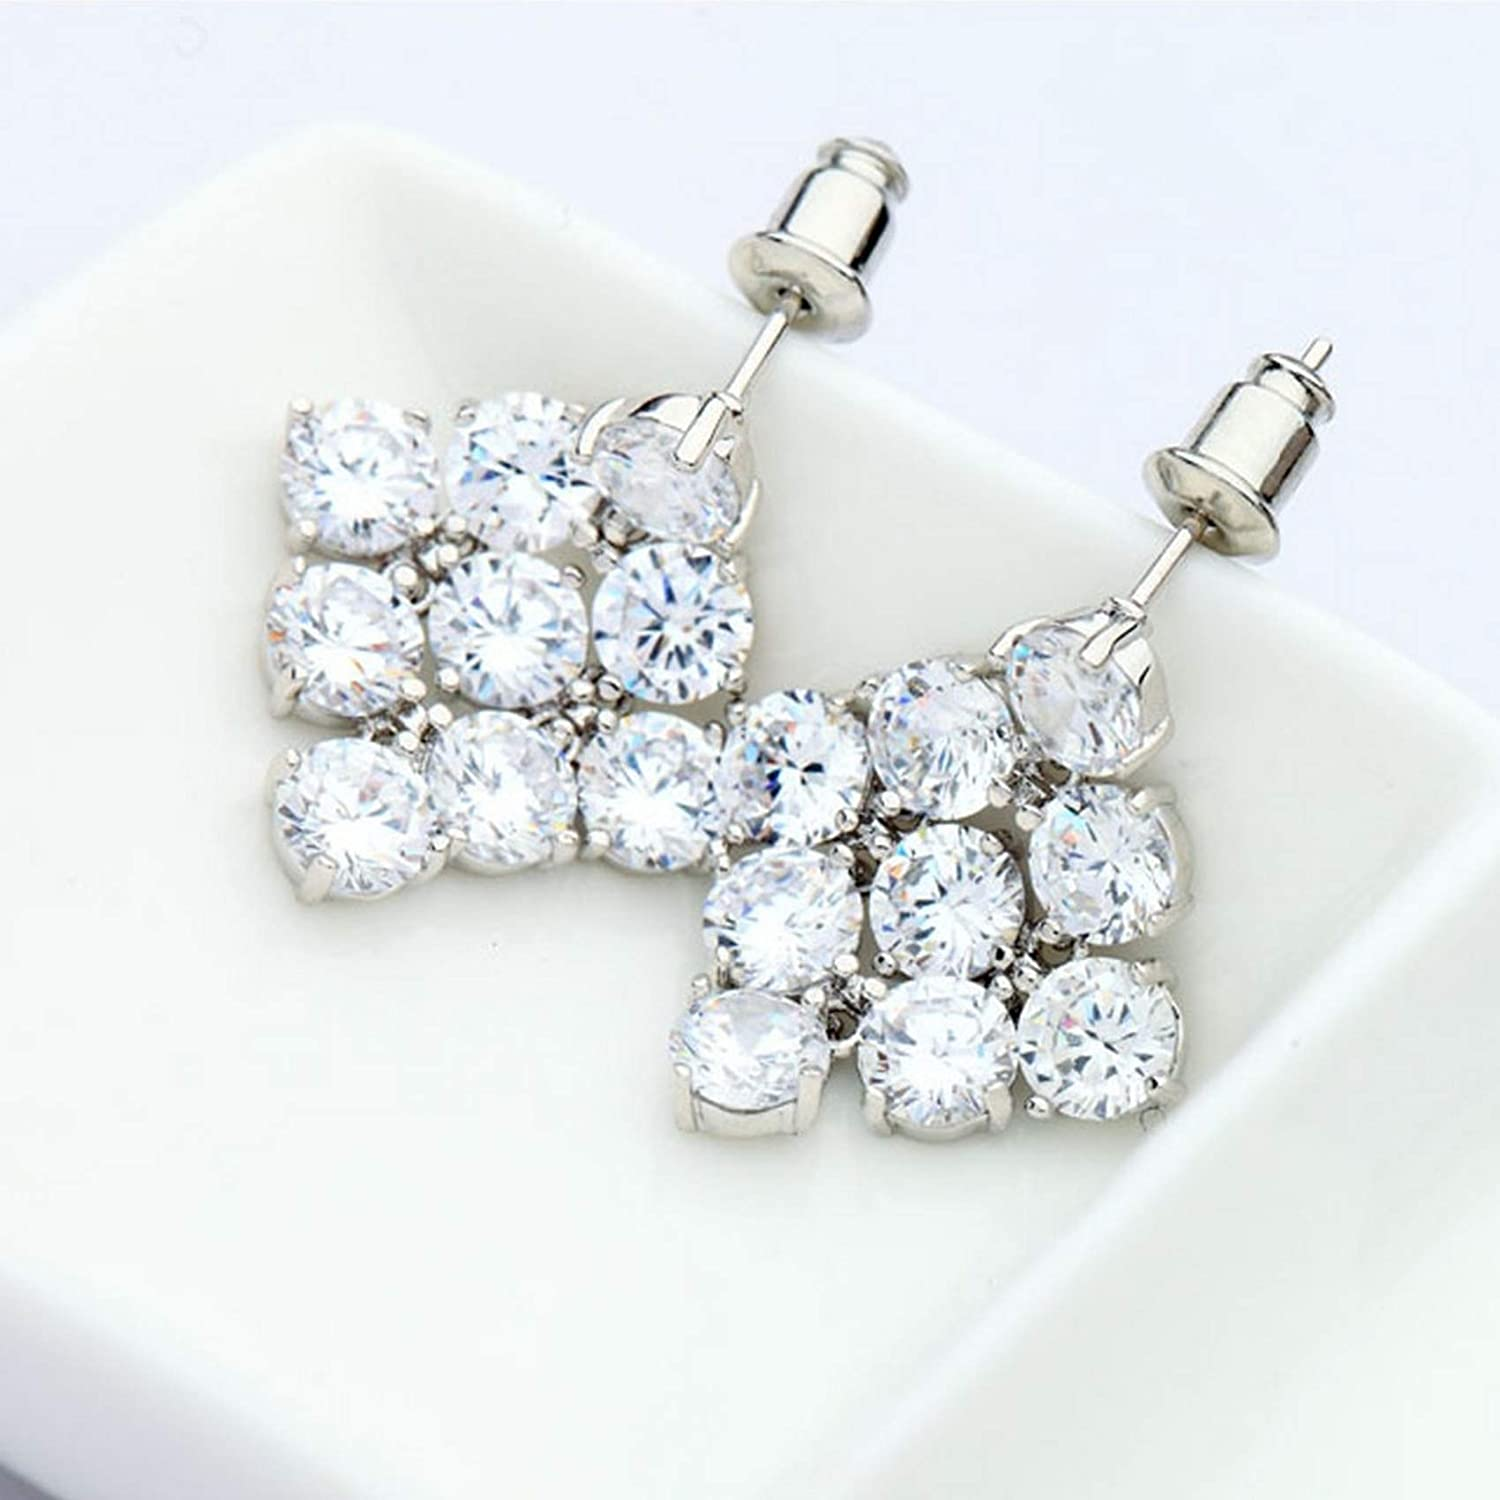 CS-DB Silver Full Of Clear Round Cubic Zirconia Joined Diamond Shape Dangle Stud Charm Earrings